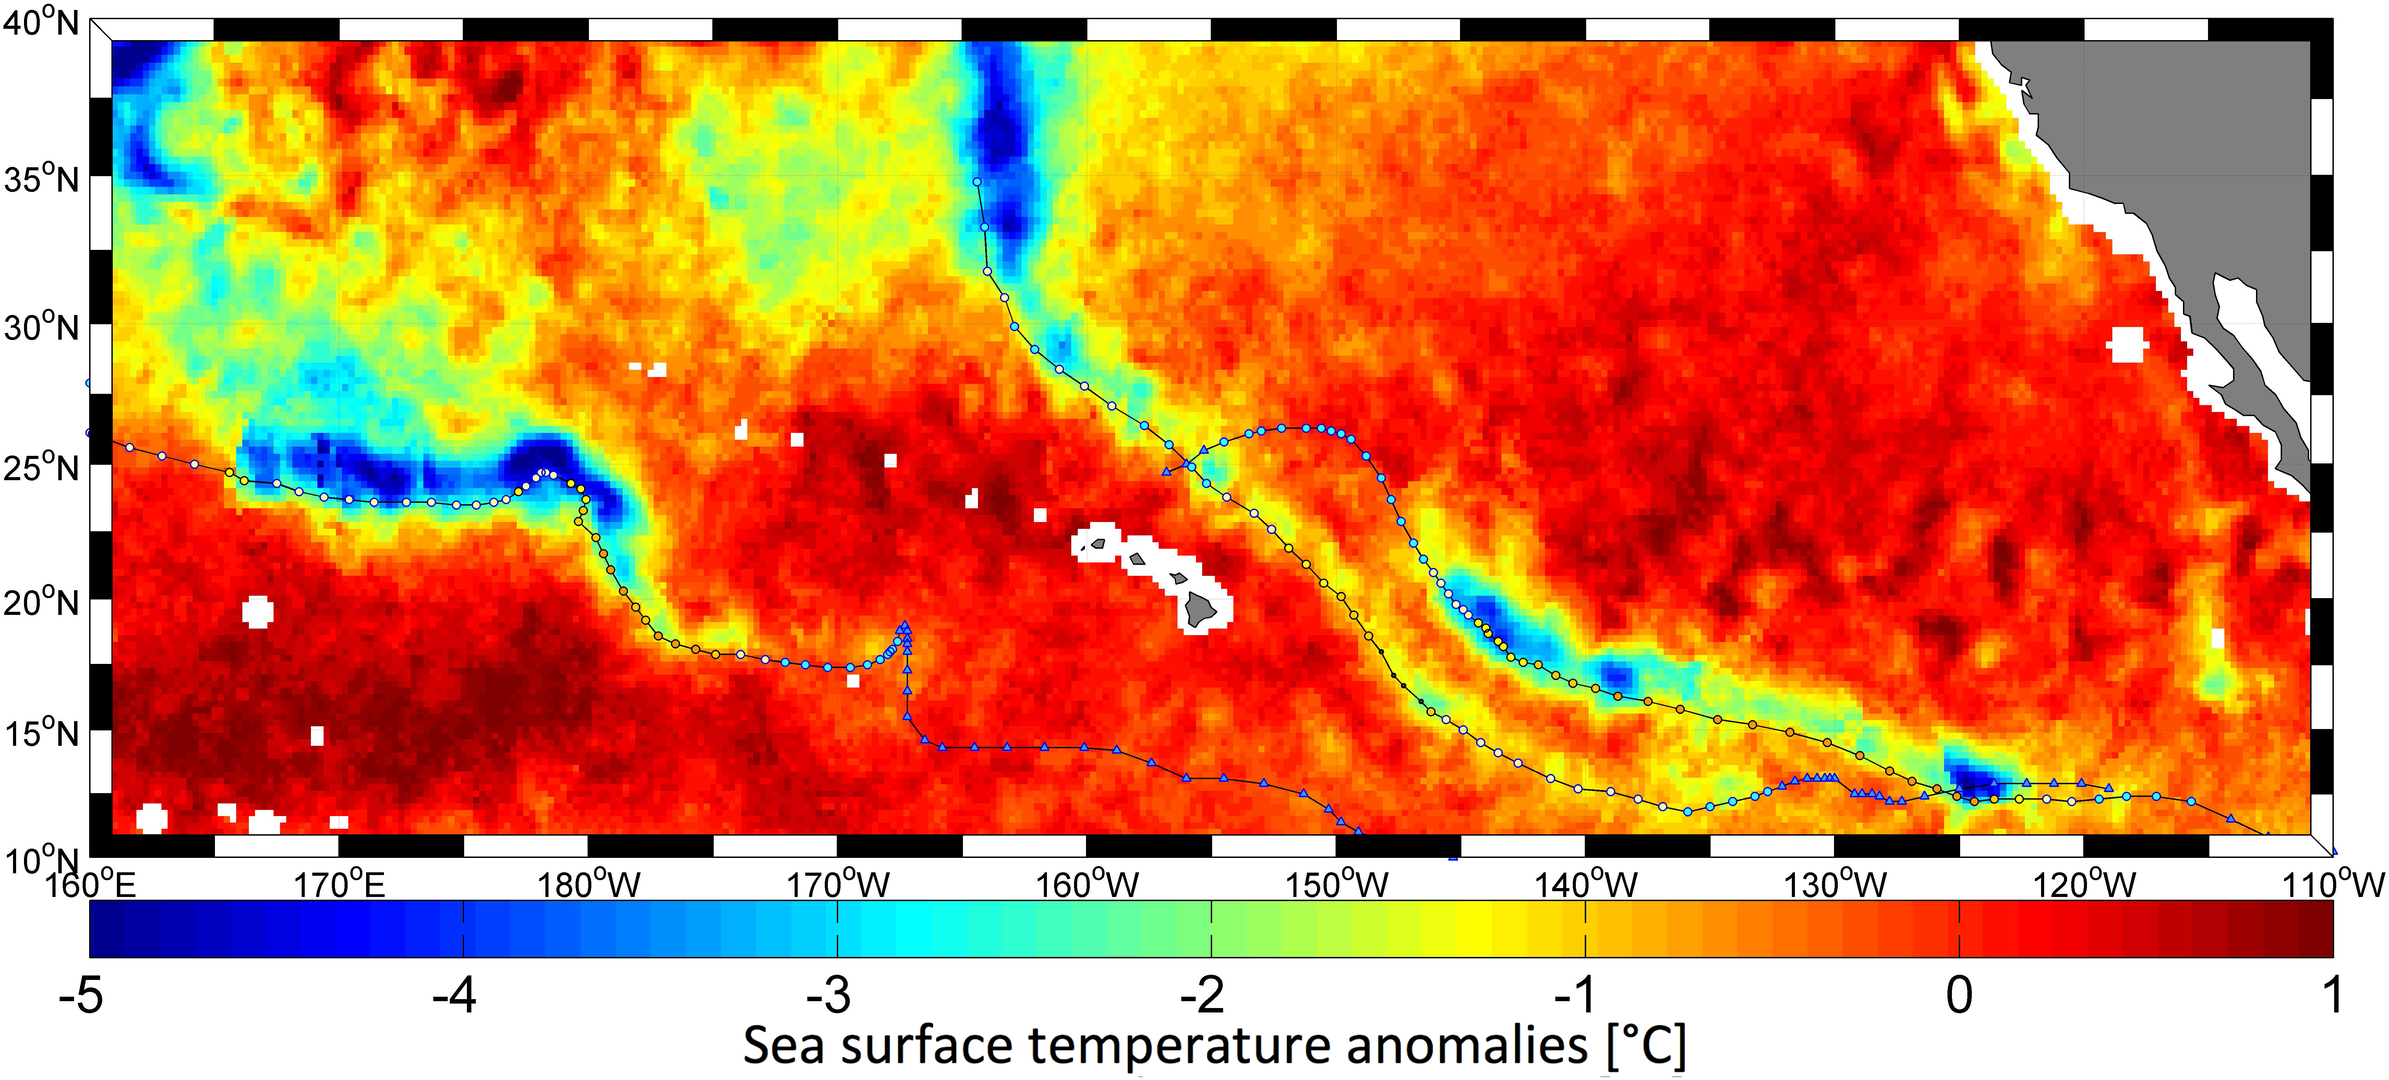 Hurricanes change temperature of sea surface